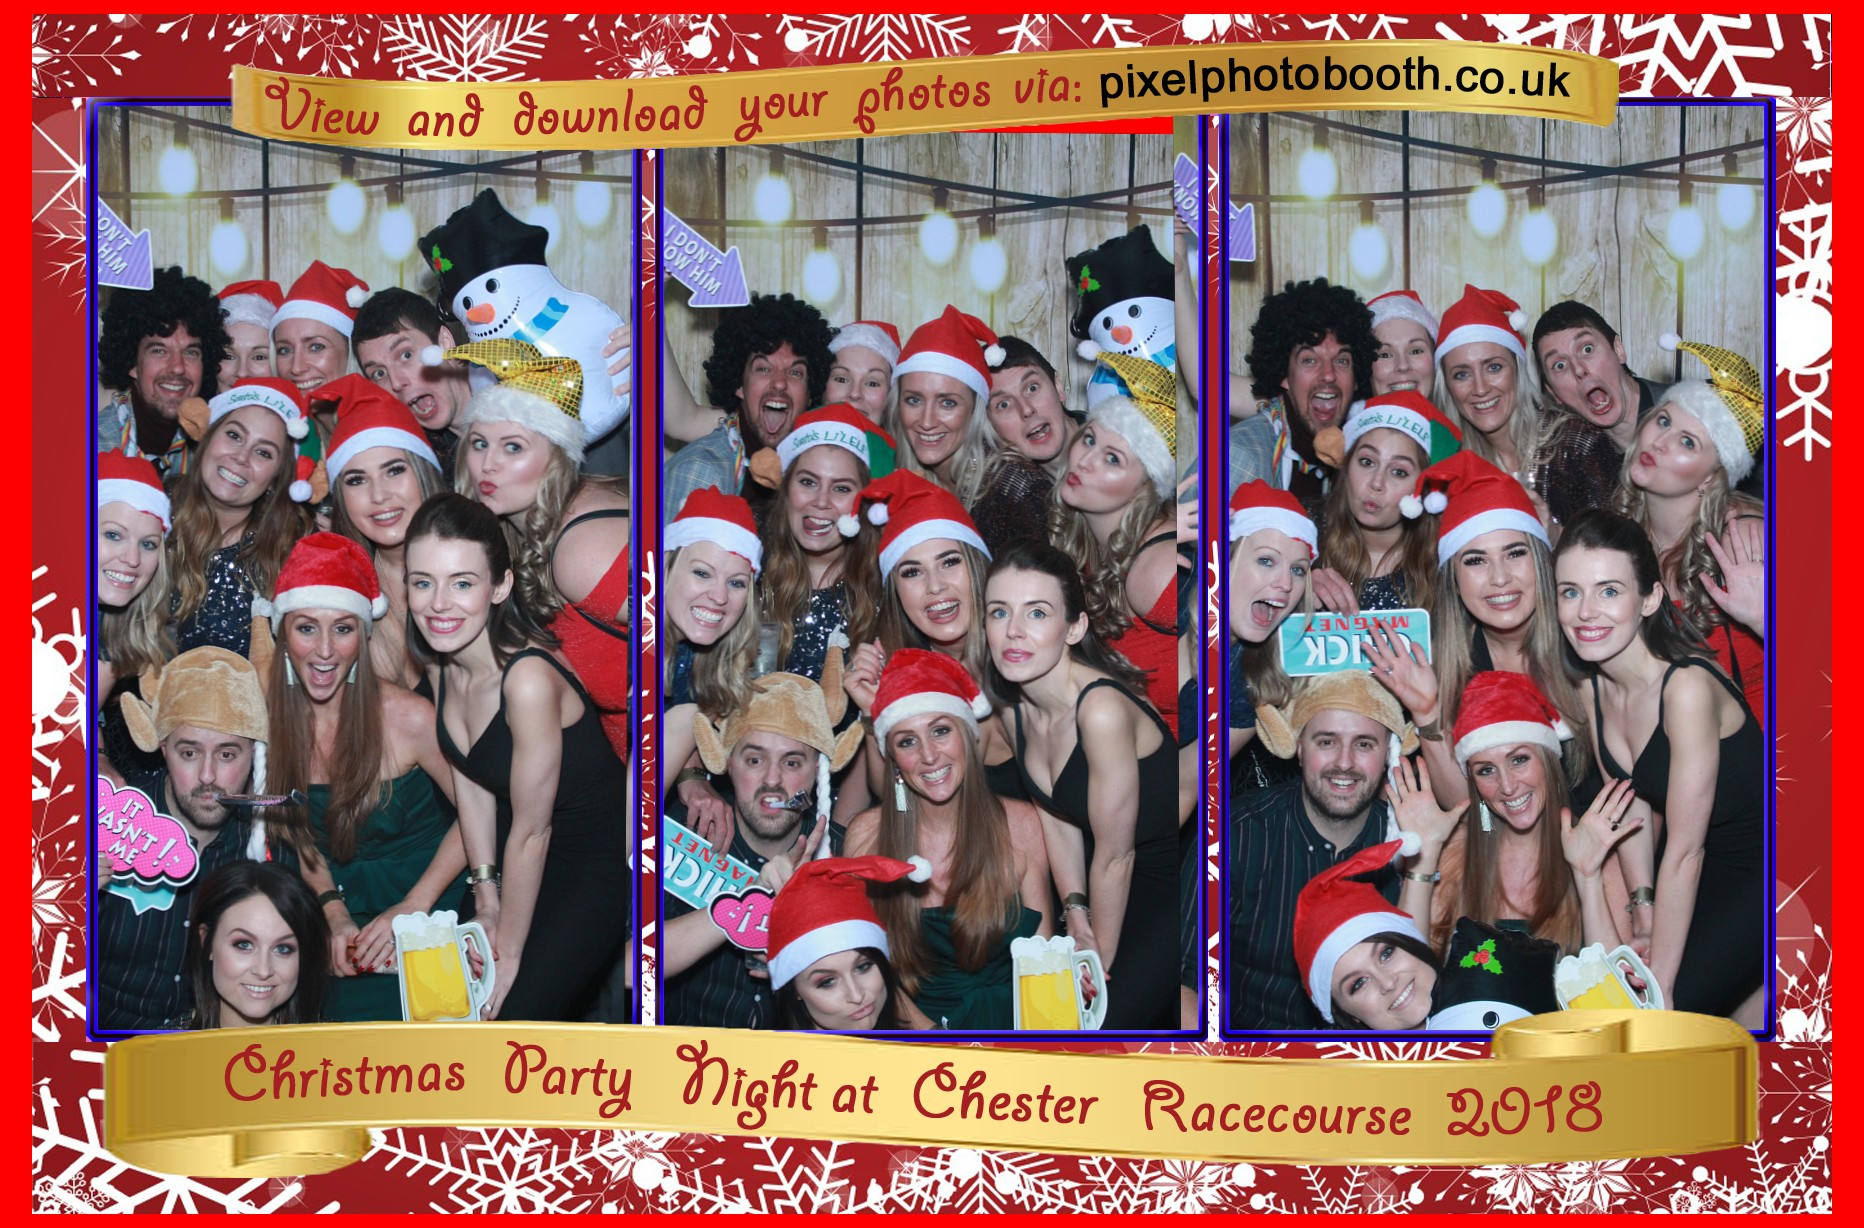 13th Dec 2018: Chester Racecourse Christmas Party Night